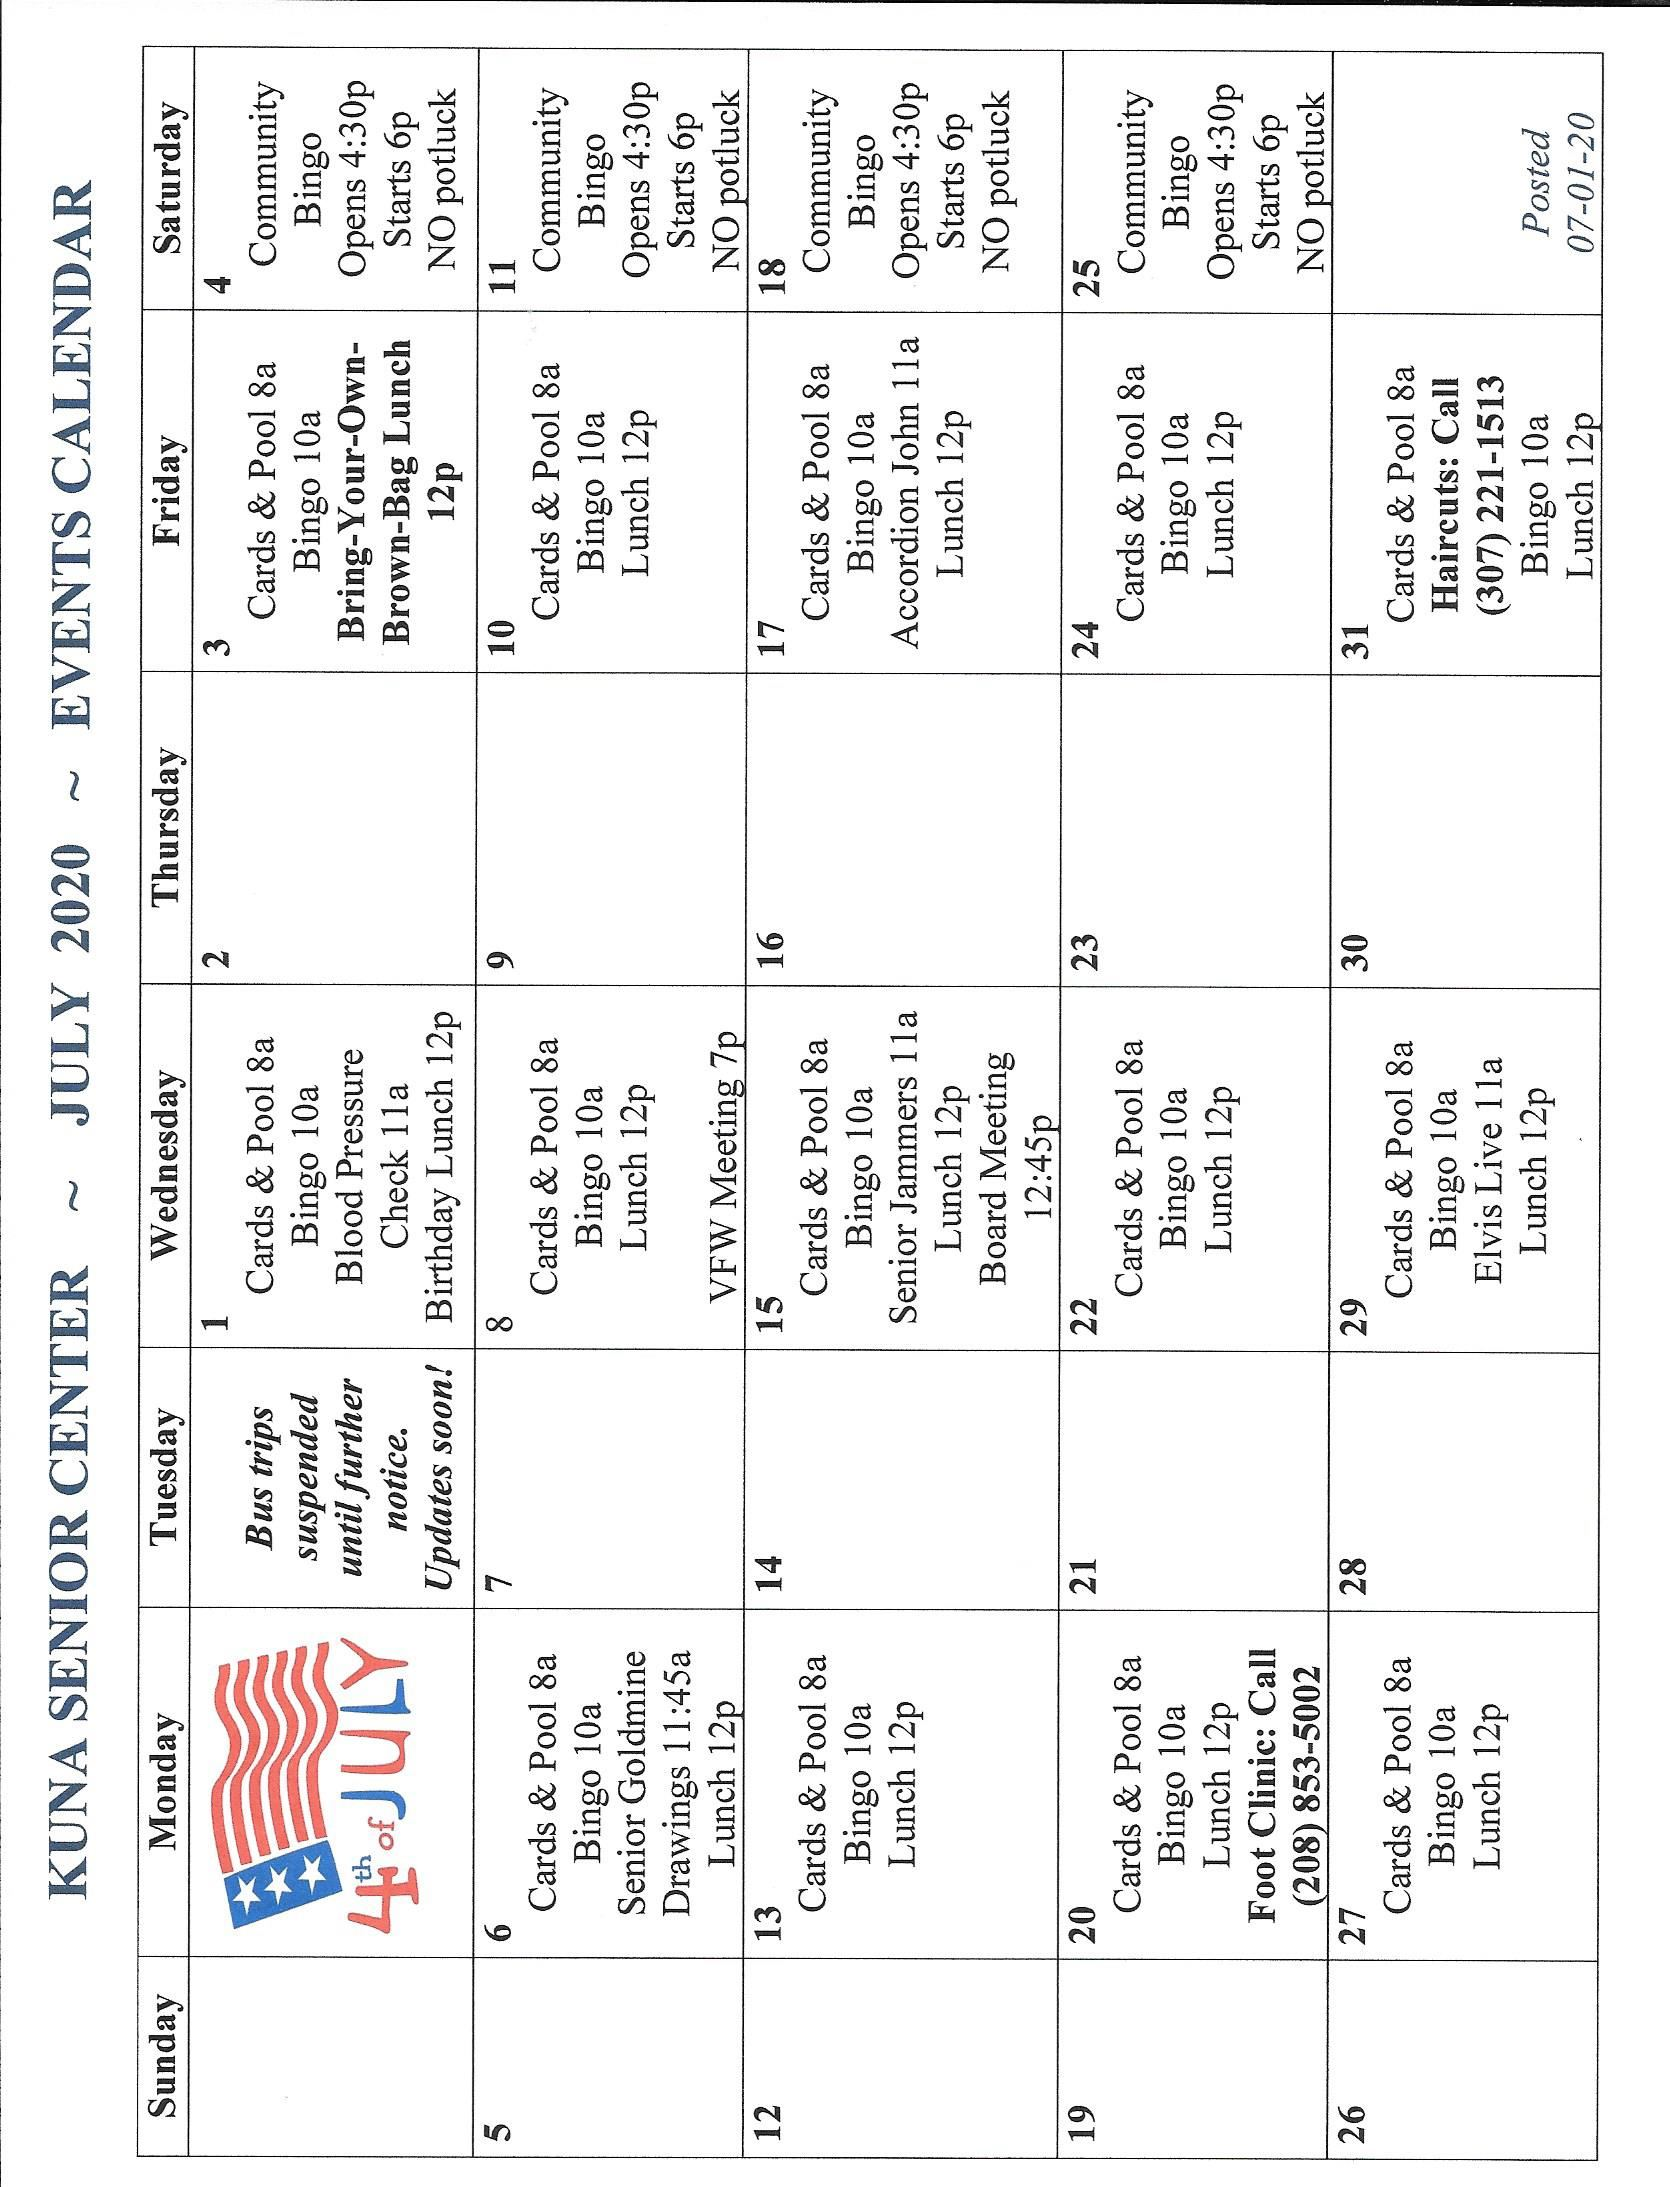 Kuna Senior Center Events Calendar July 2020 artwork JPEG)